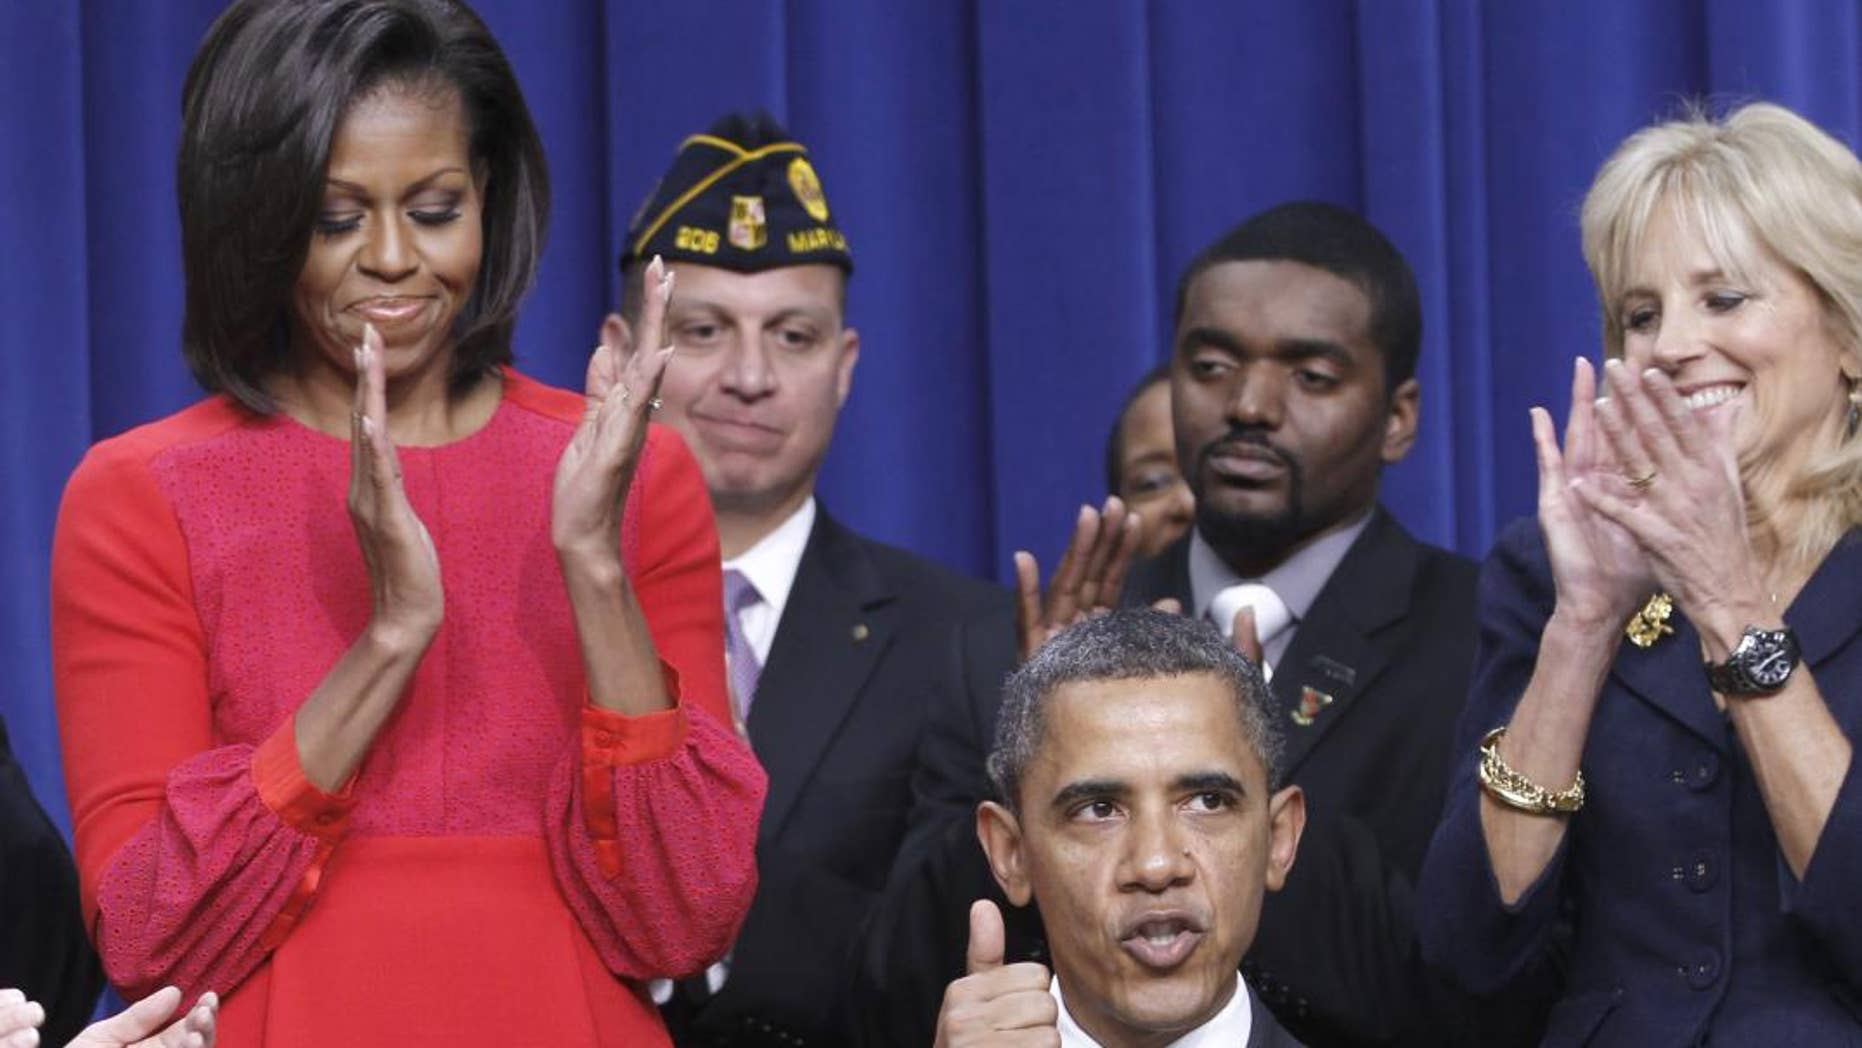 President Barack Obama give a 'thumbs-up' after signing legislation that will provide tax credits to help put veterans back to work, Monday, Nov. 21, 2011, during a ceremony at the Eisenhower Executive Office Building on the White House complex in Washington. The president is joined by first lady Michelle Obama, and Dr. Jill Biden. (AP Photo/Pablo Martinez Monsivais)